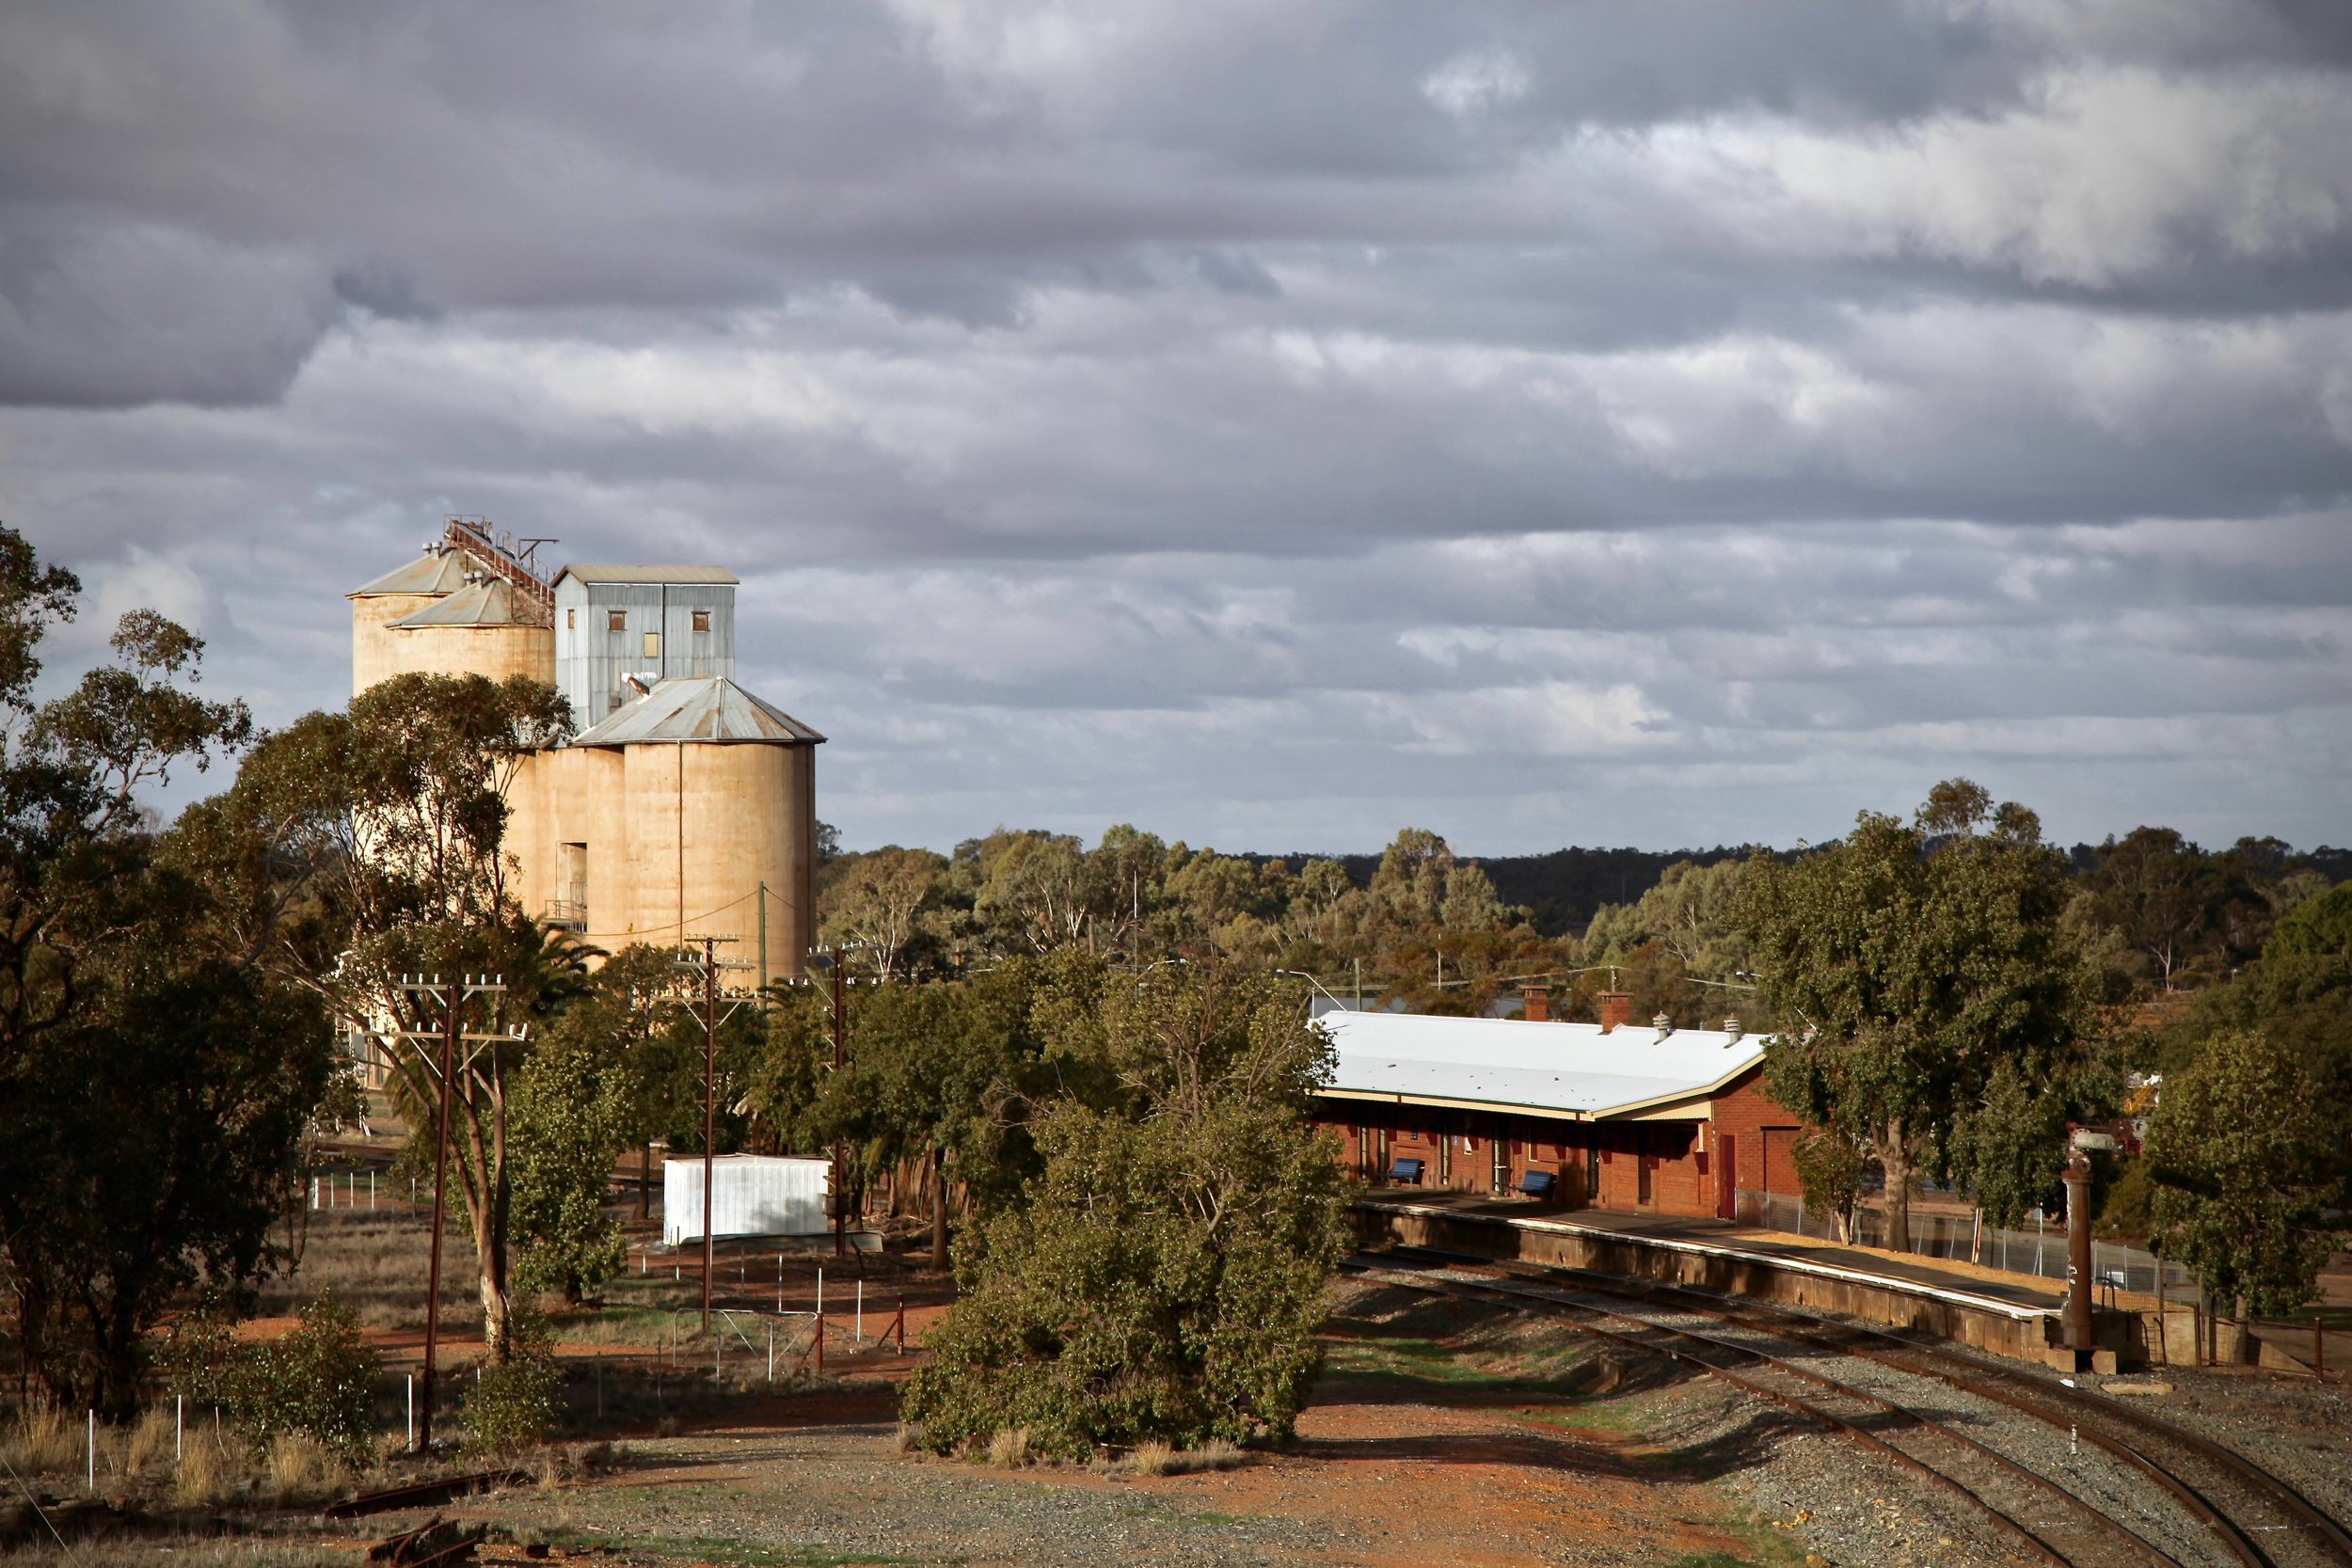 Condobolin is about 450km west of Sydney in regional NSW.